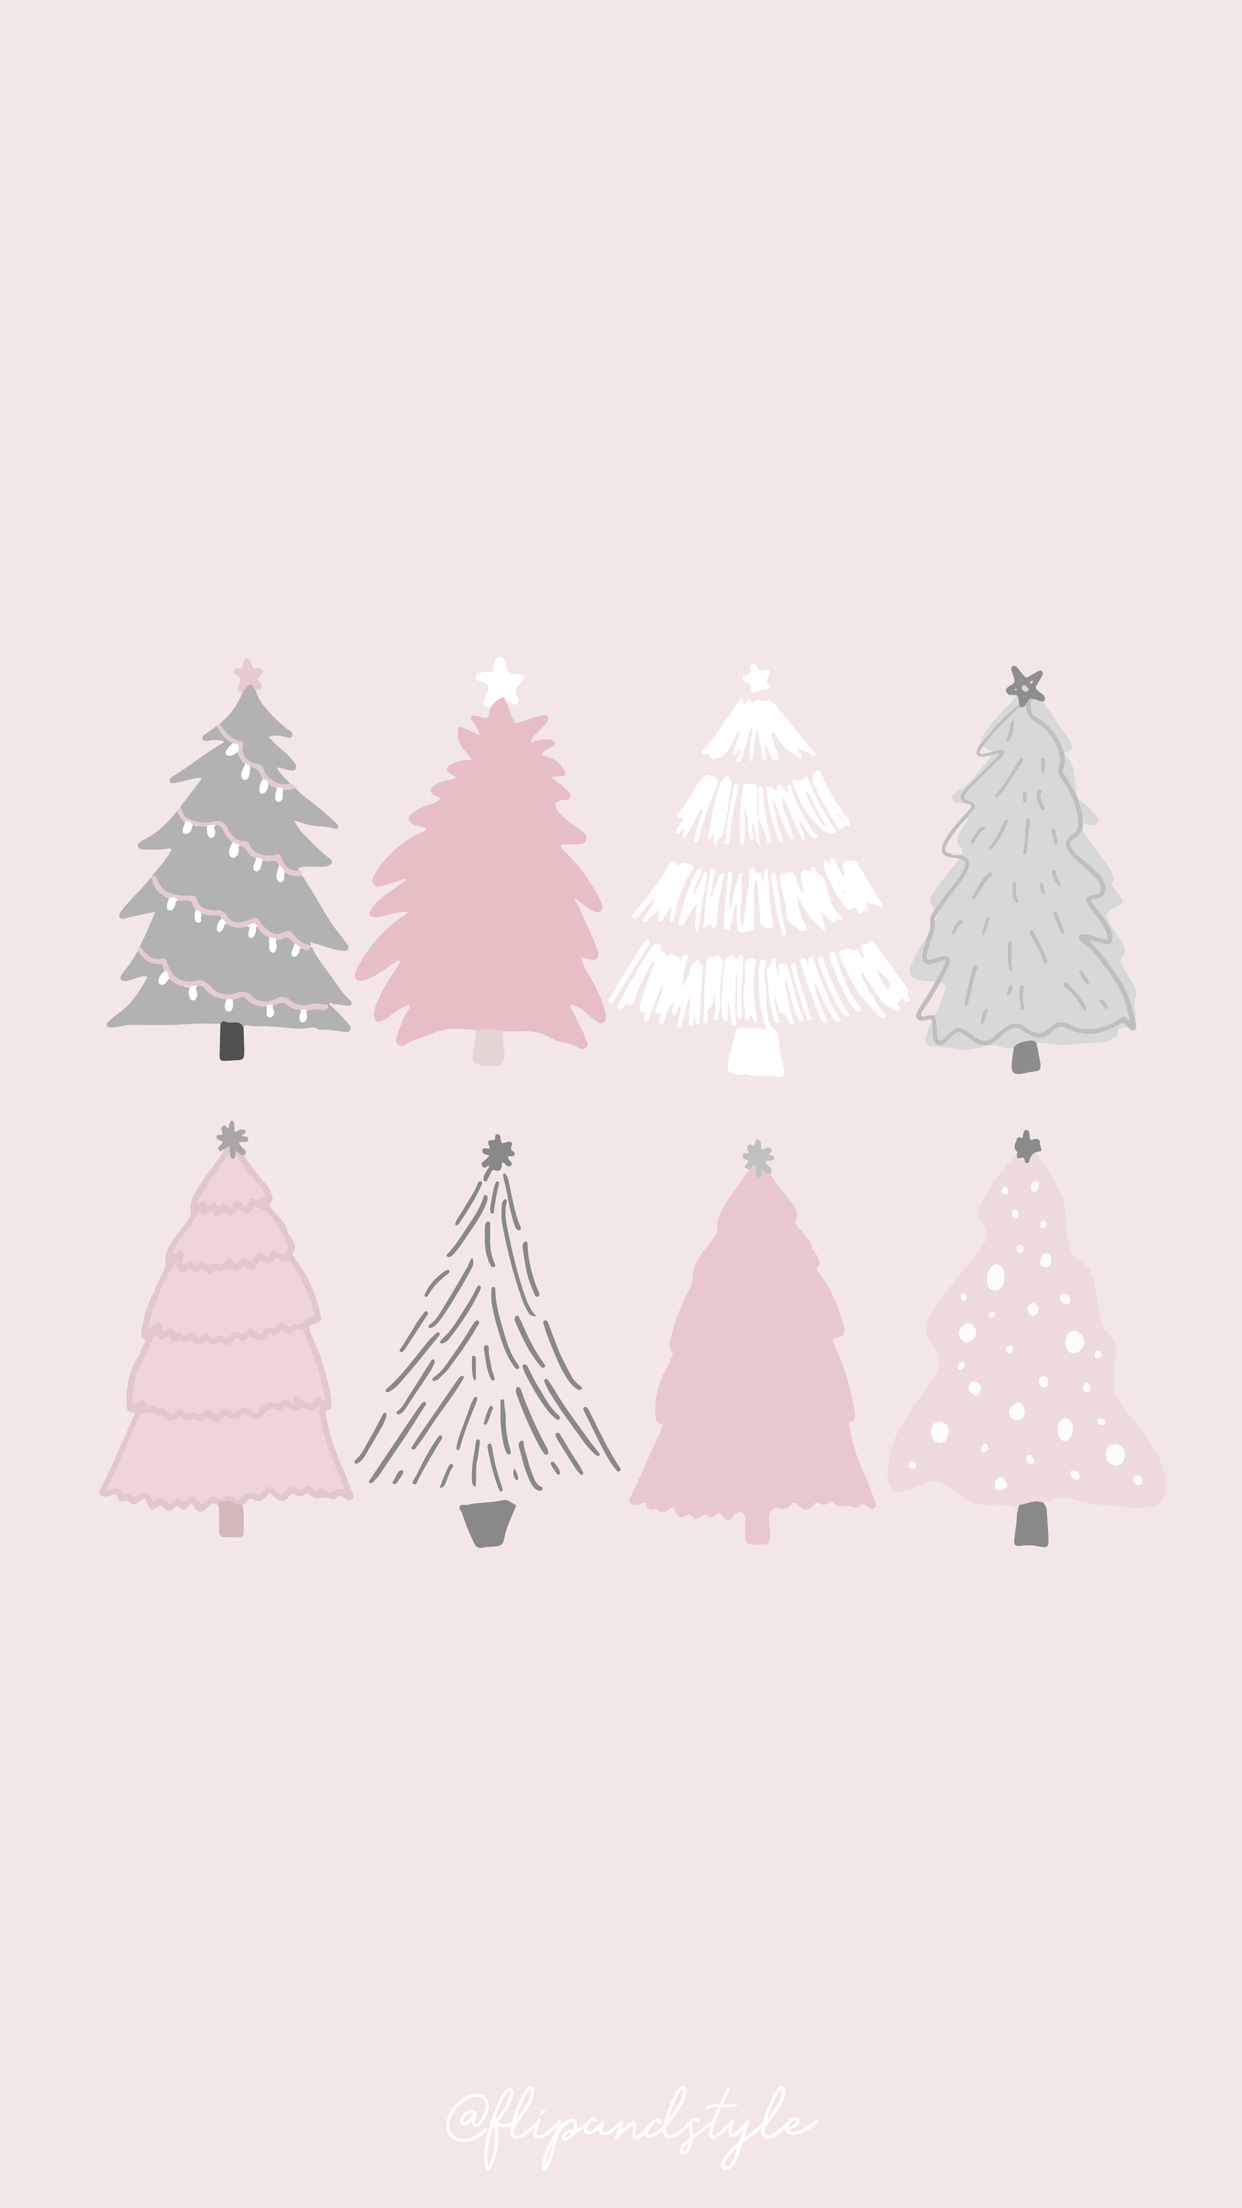 free christmas phone backgrounds